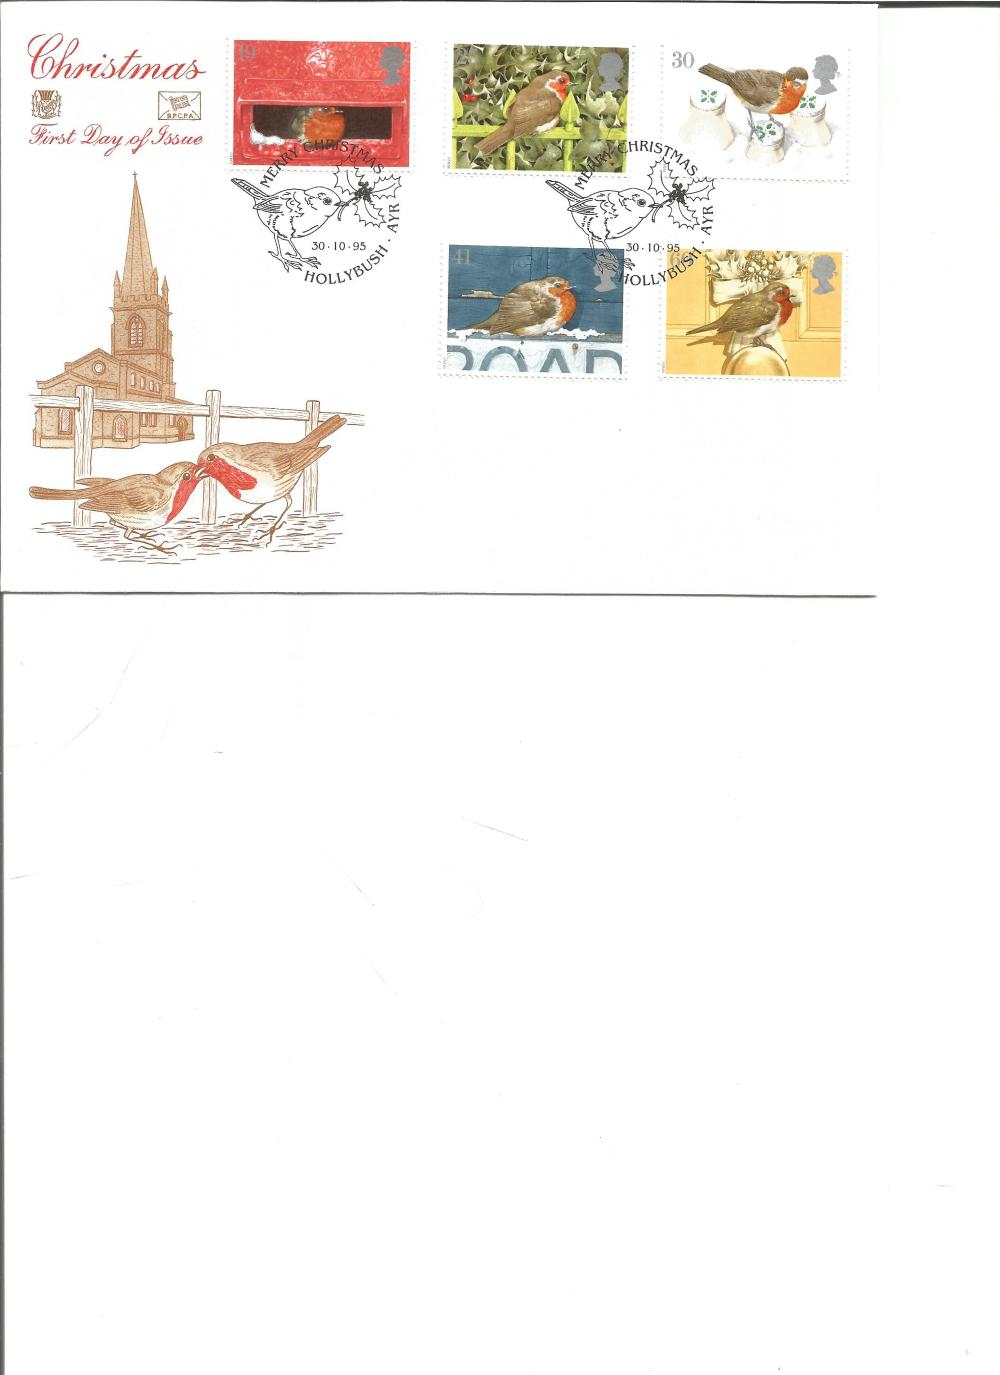 FDC Christmas c/w set of five commemorative stamps PM Merry Christmas, Hollybush, Ayr 30. 10. 95. We